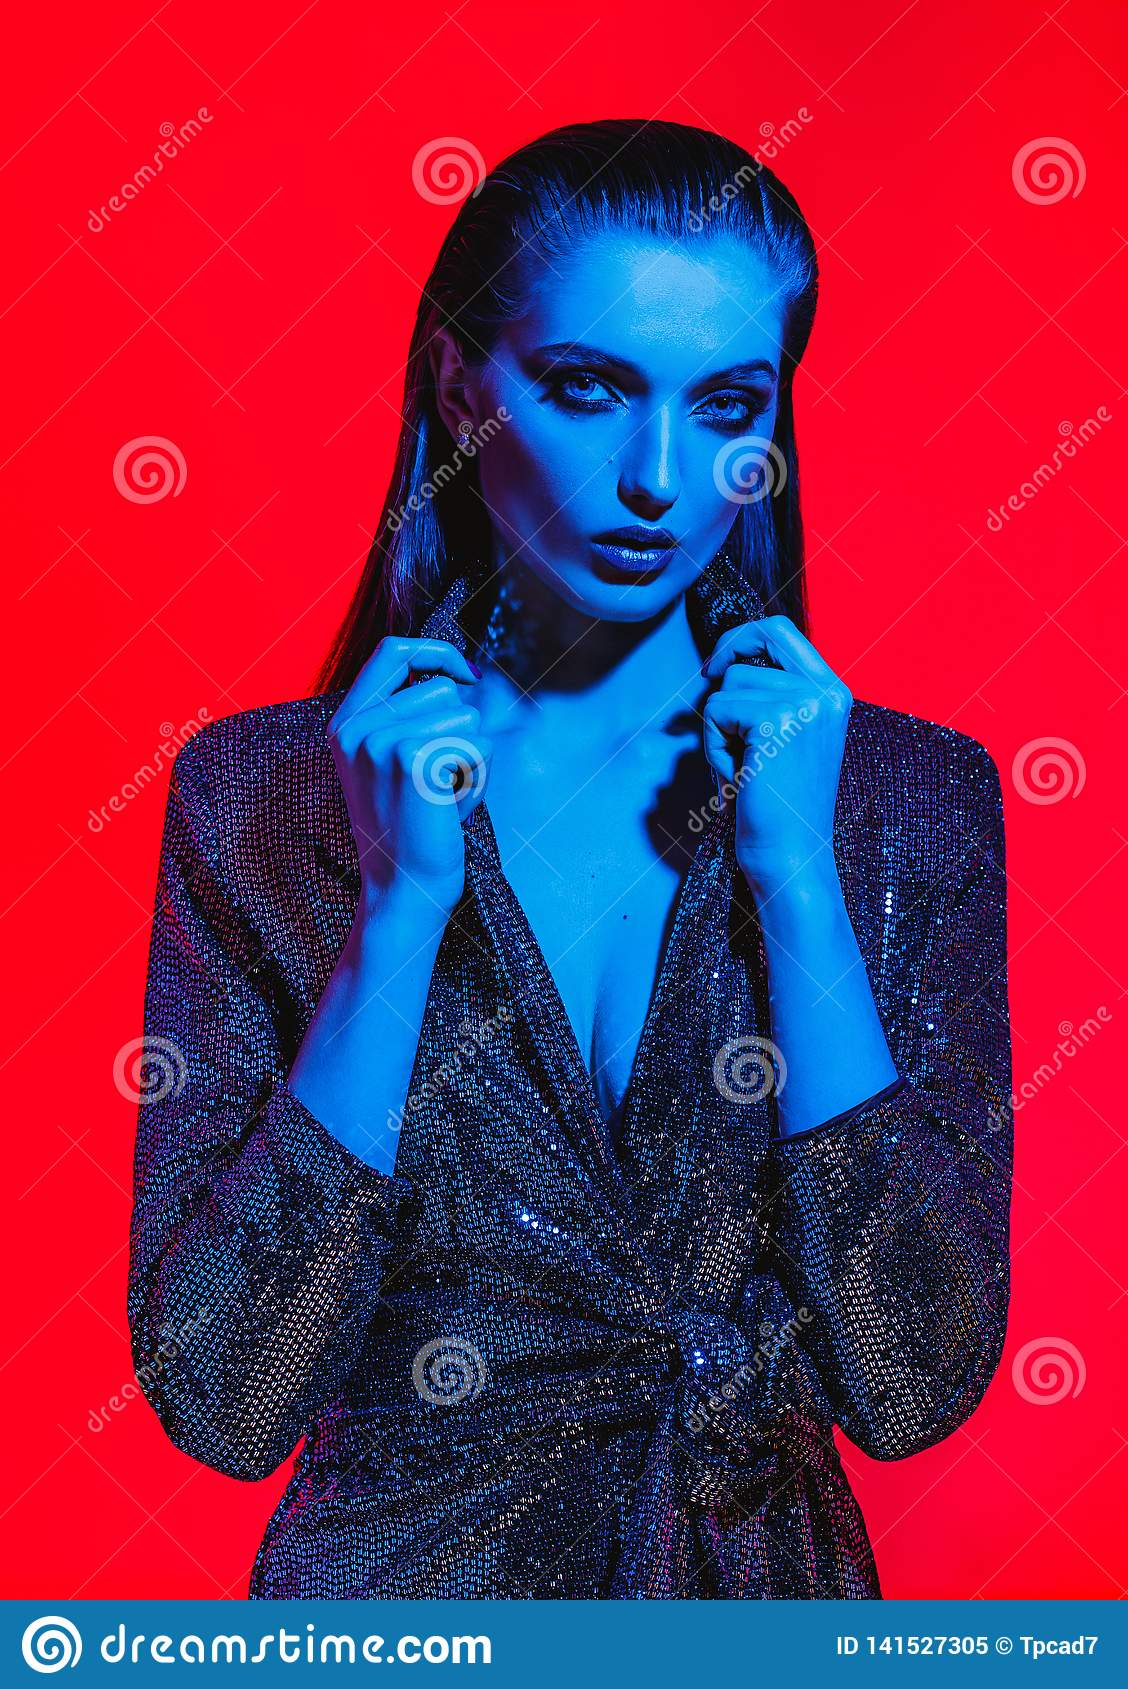 Fashion girl with long hair and stylish makeup in a black shining dress poses on the red background in neon light in the